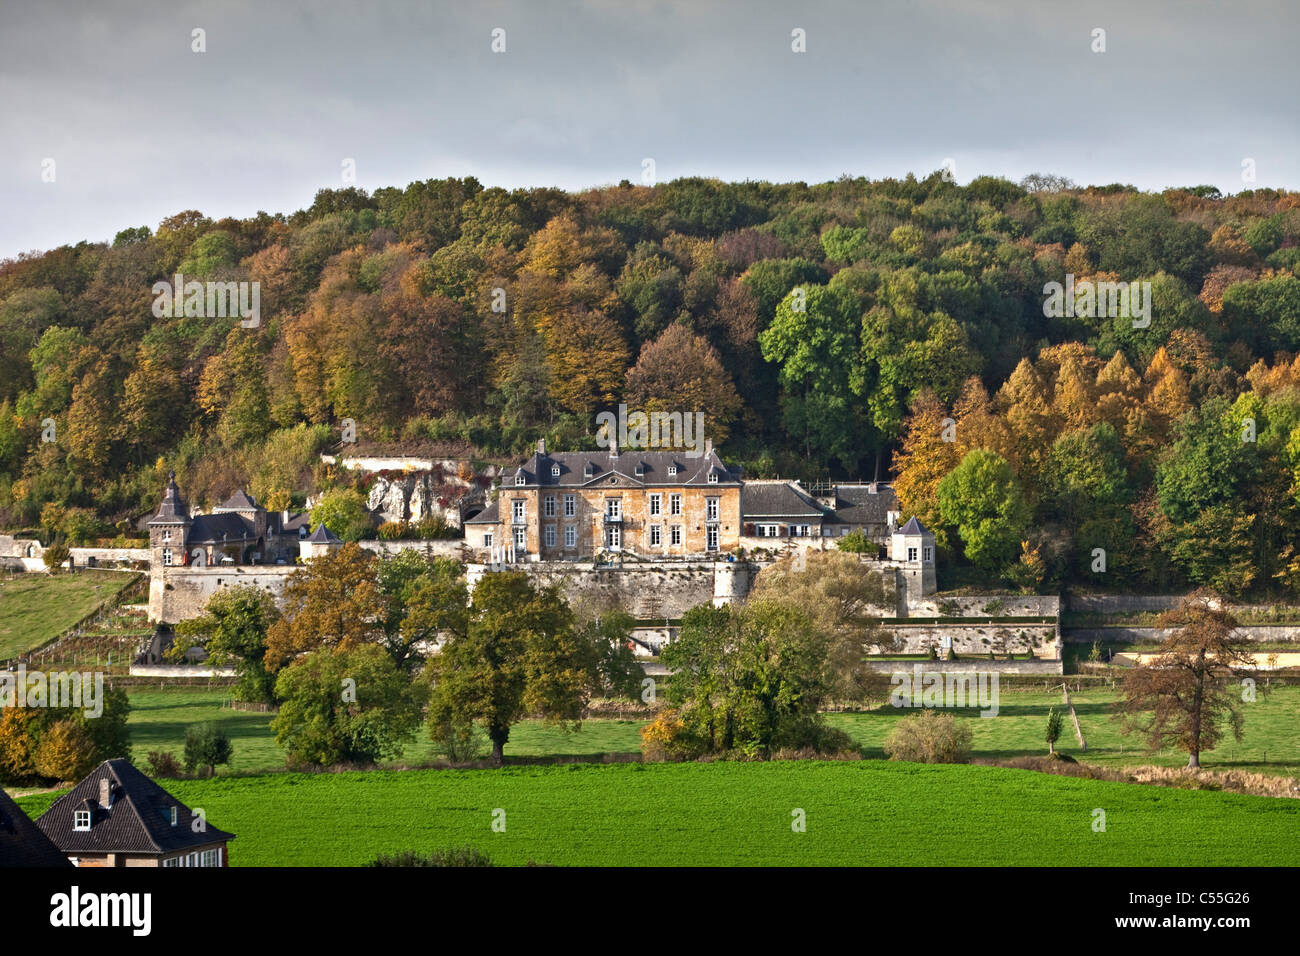 The Netherlands, Maastricht, Castle called Neercanne. - Stock Image